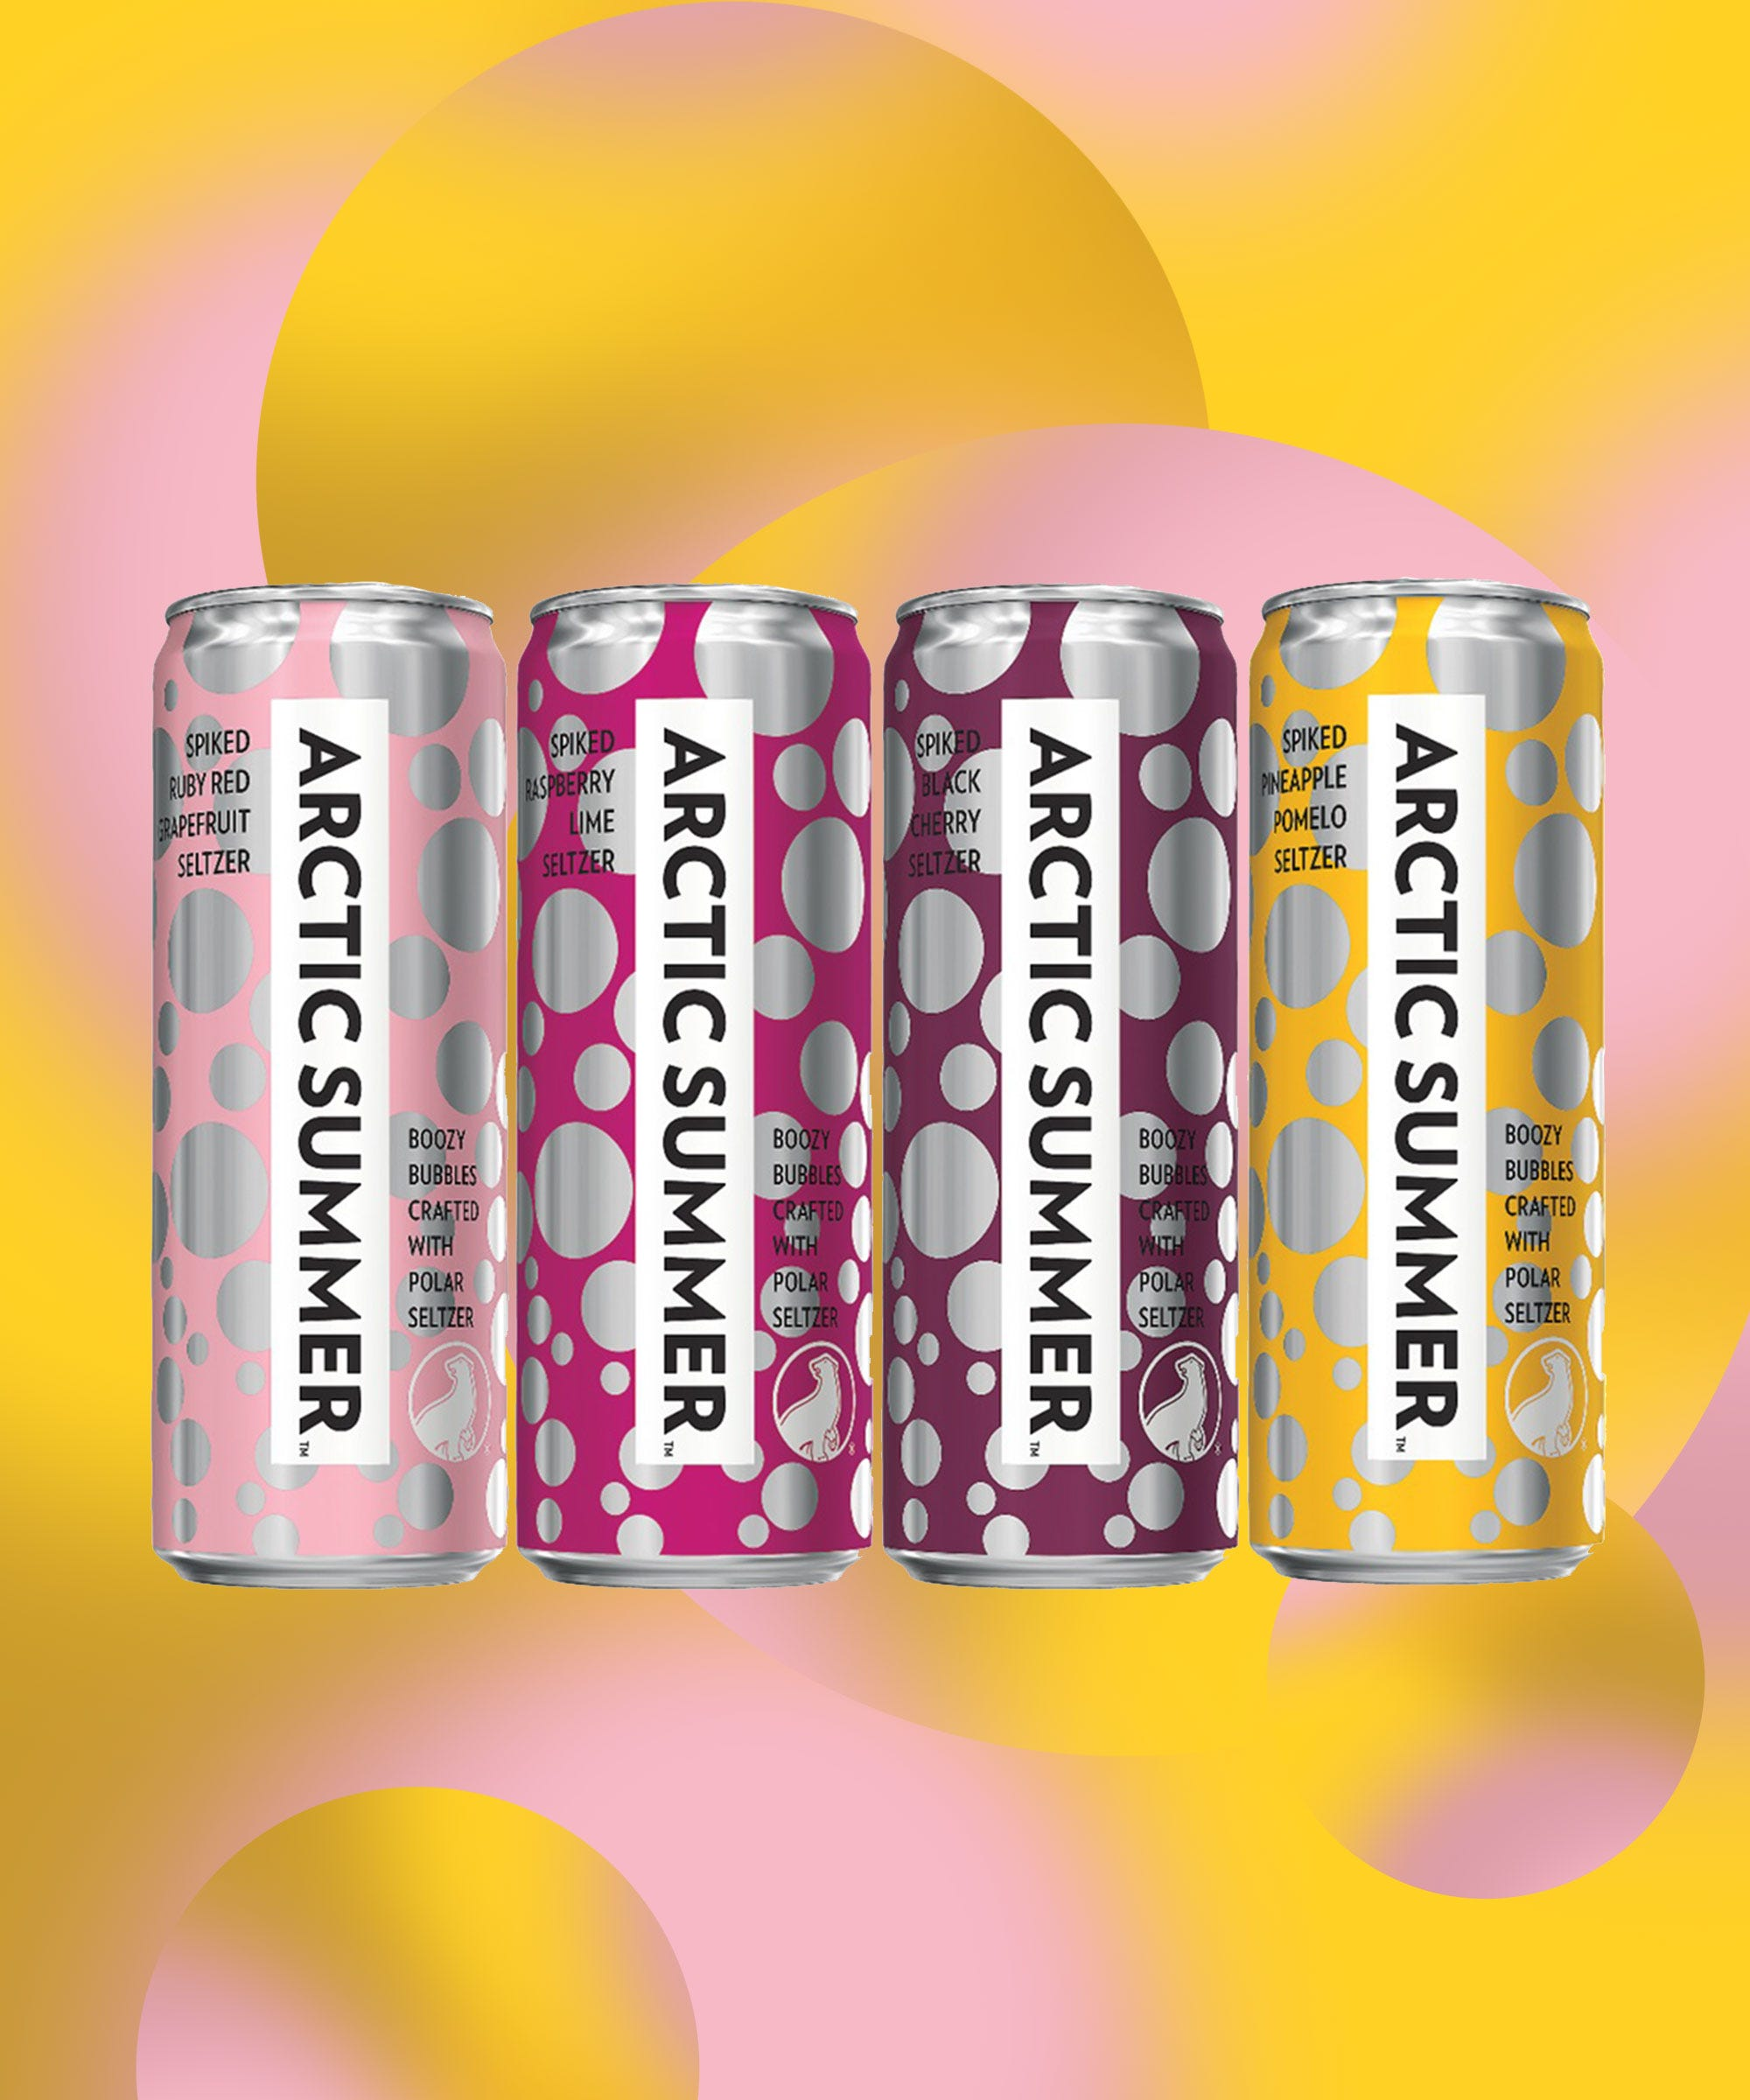 23 Spiked Seltzer Brands To Sip On This Summer